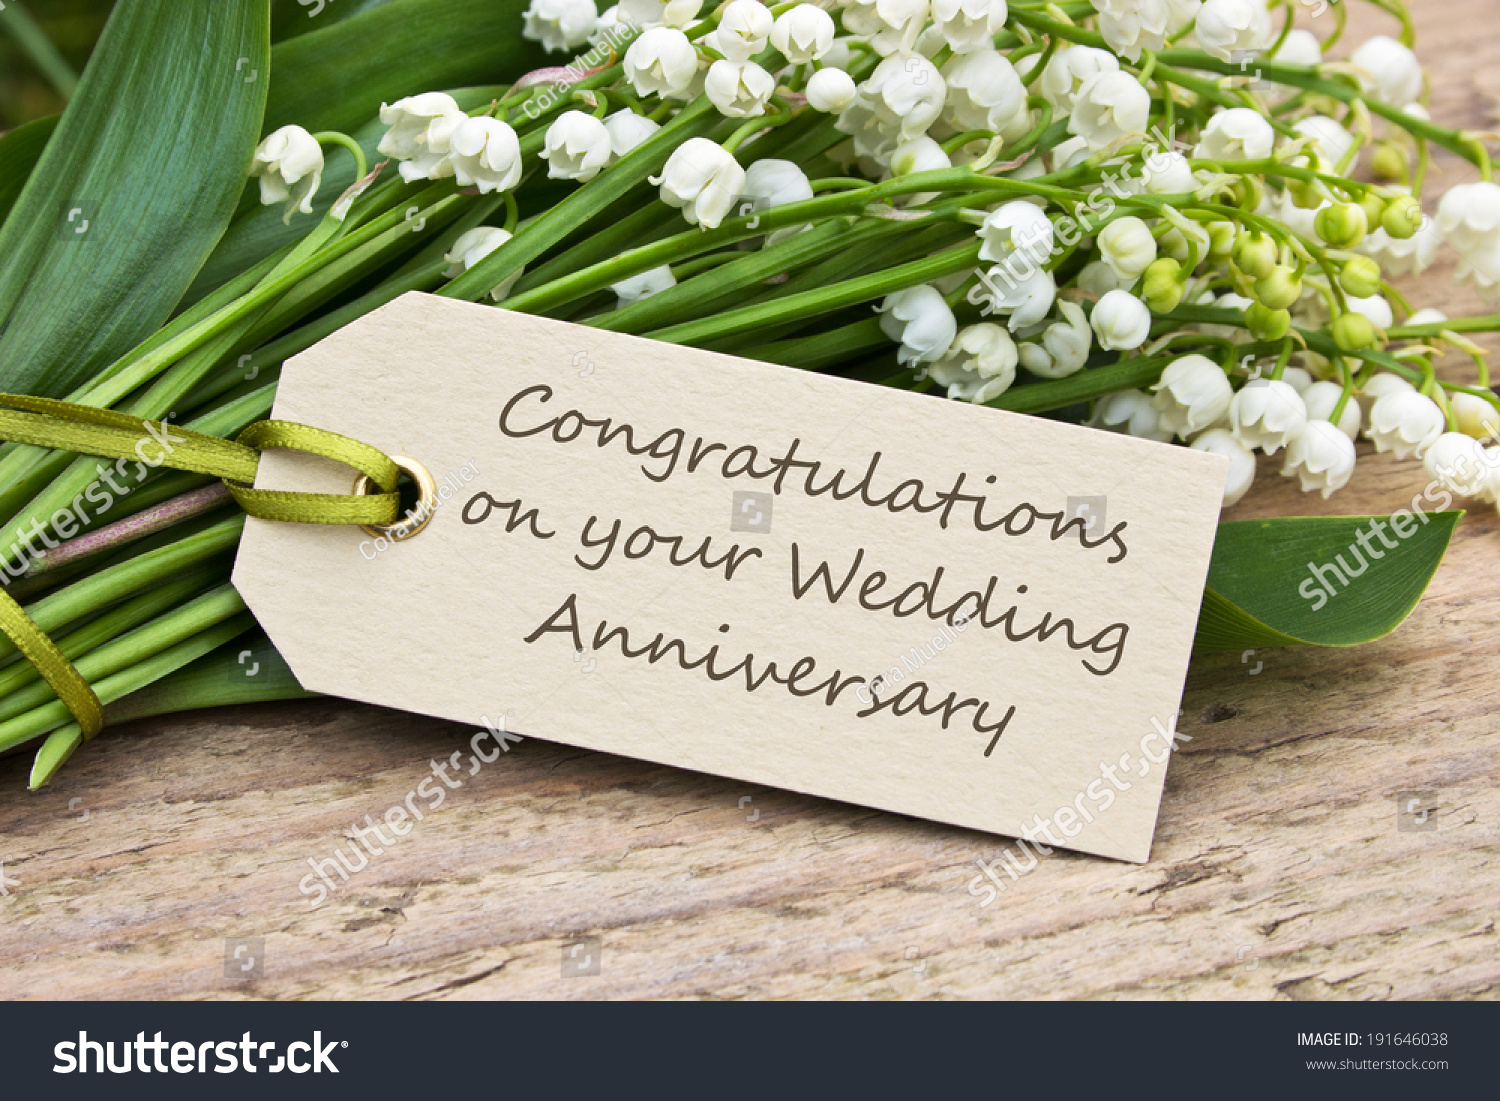 Wedding Anniversary Card With Lily Of The Valley Congratulations On Your Wedding Anniversary